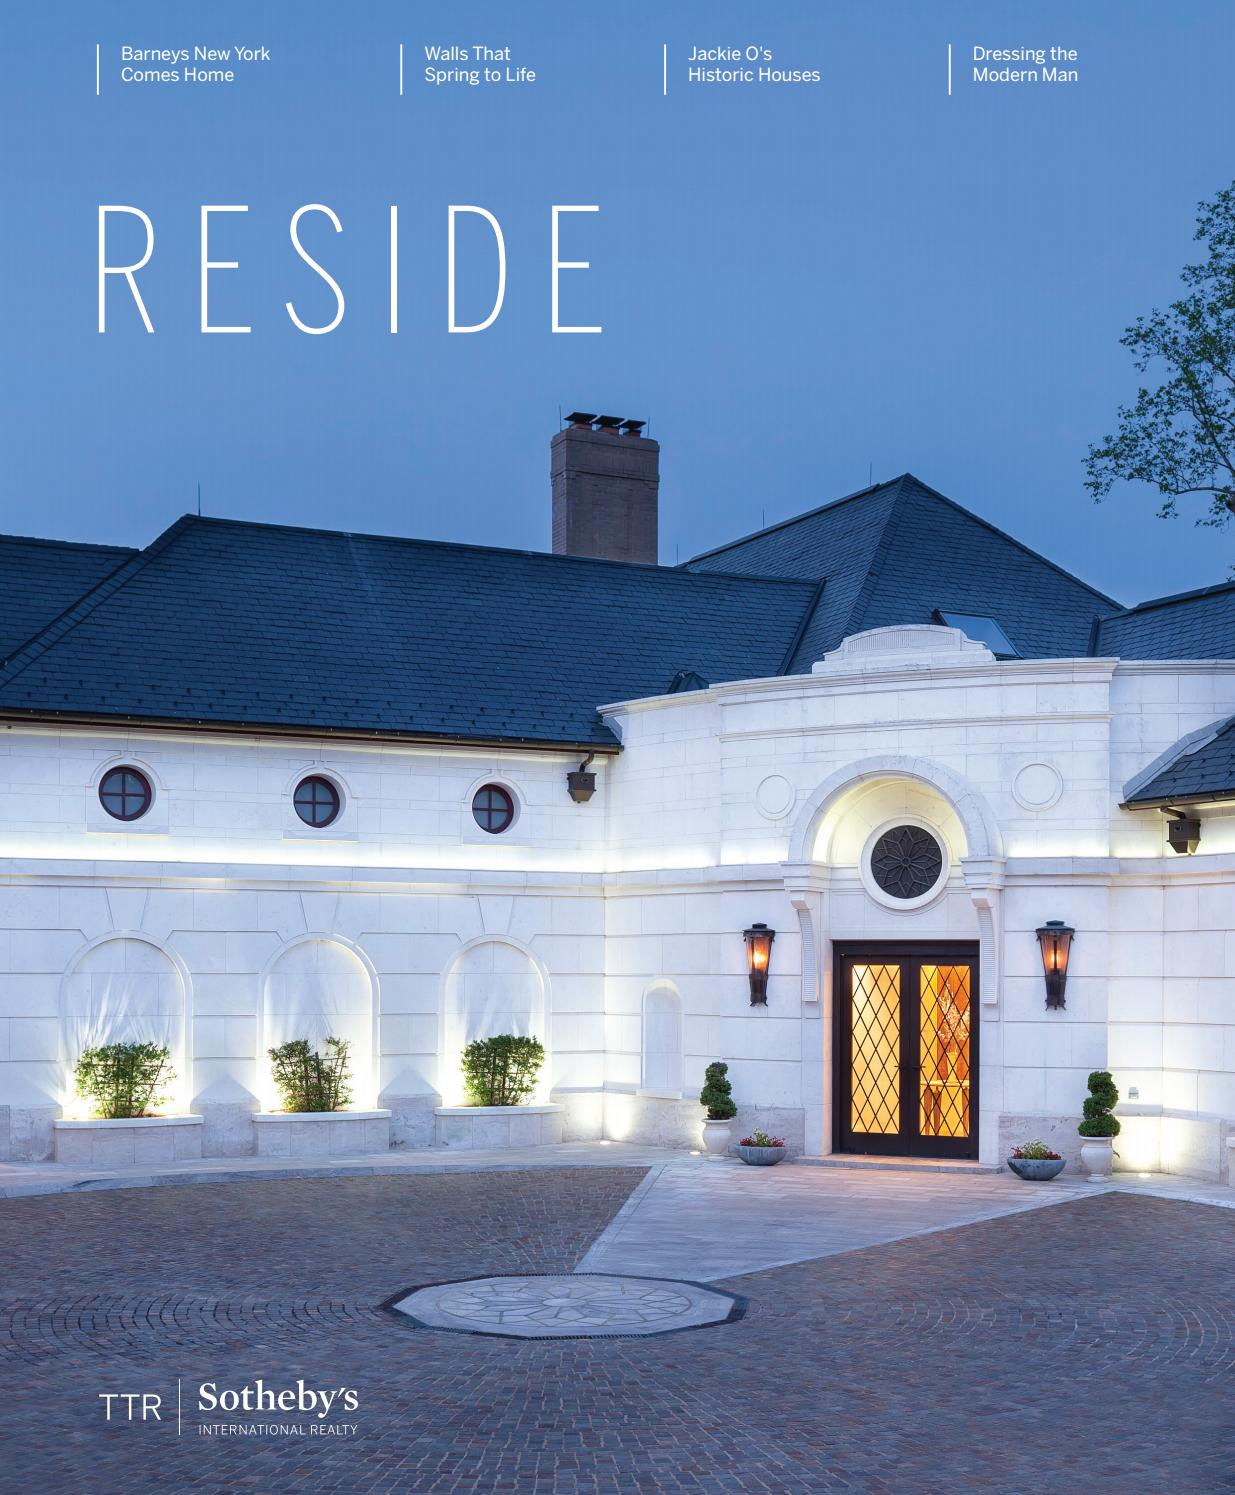 Reside presented by ttr sothebys international realty